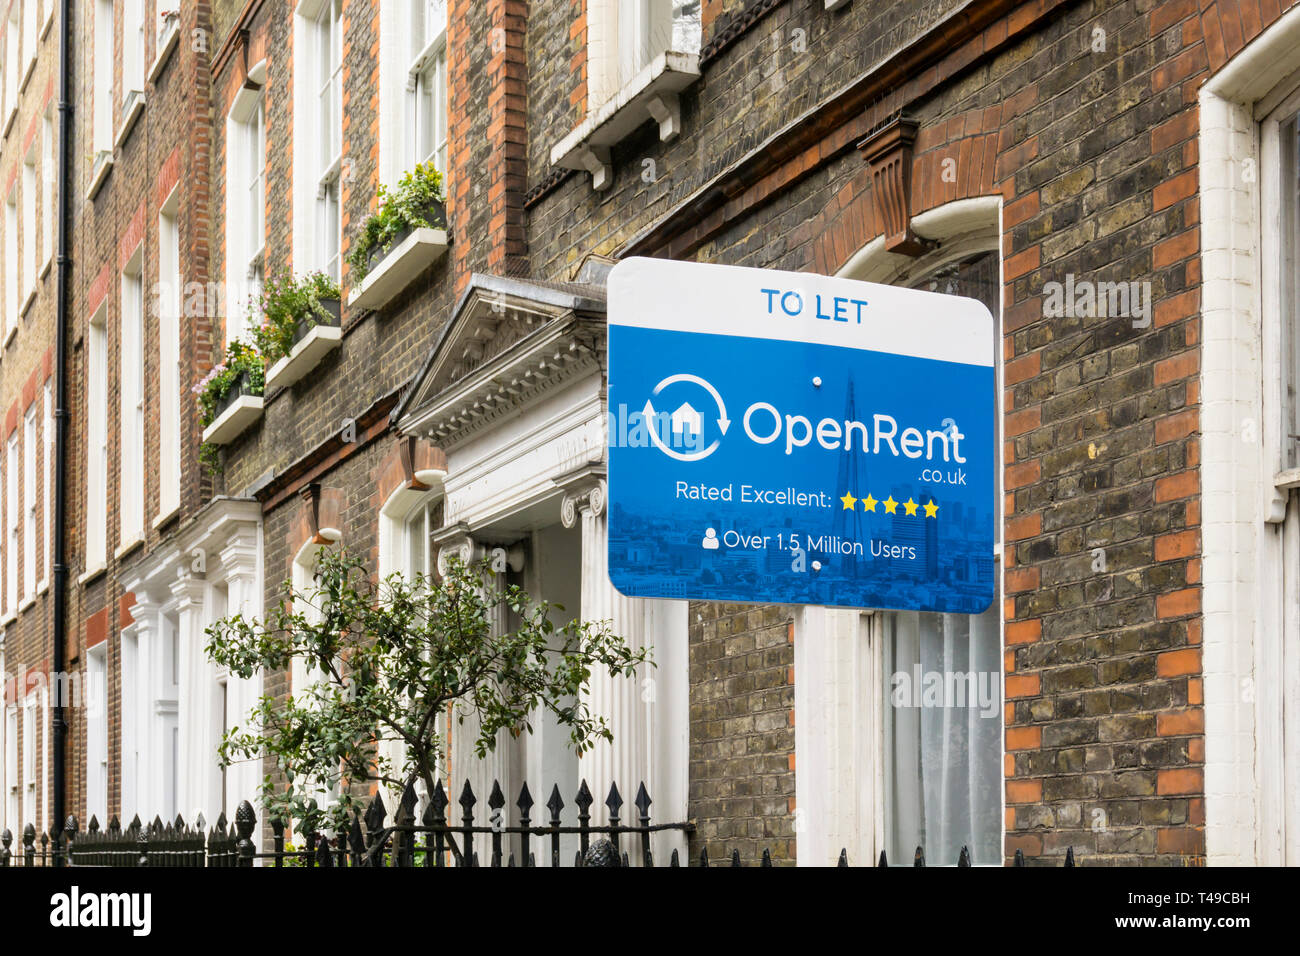 Agents To Let board on a house to let through the online letting agency OpenRent in Bloomsbury, Central London. - Stock Image